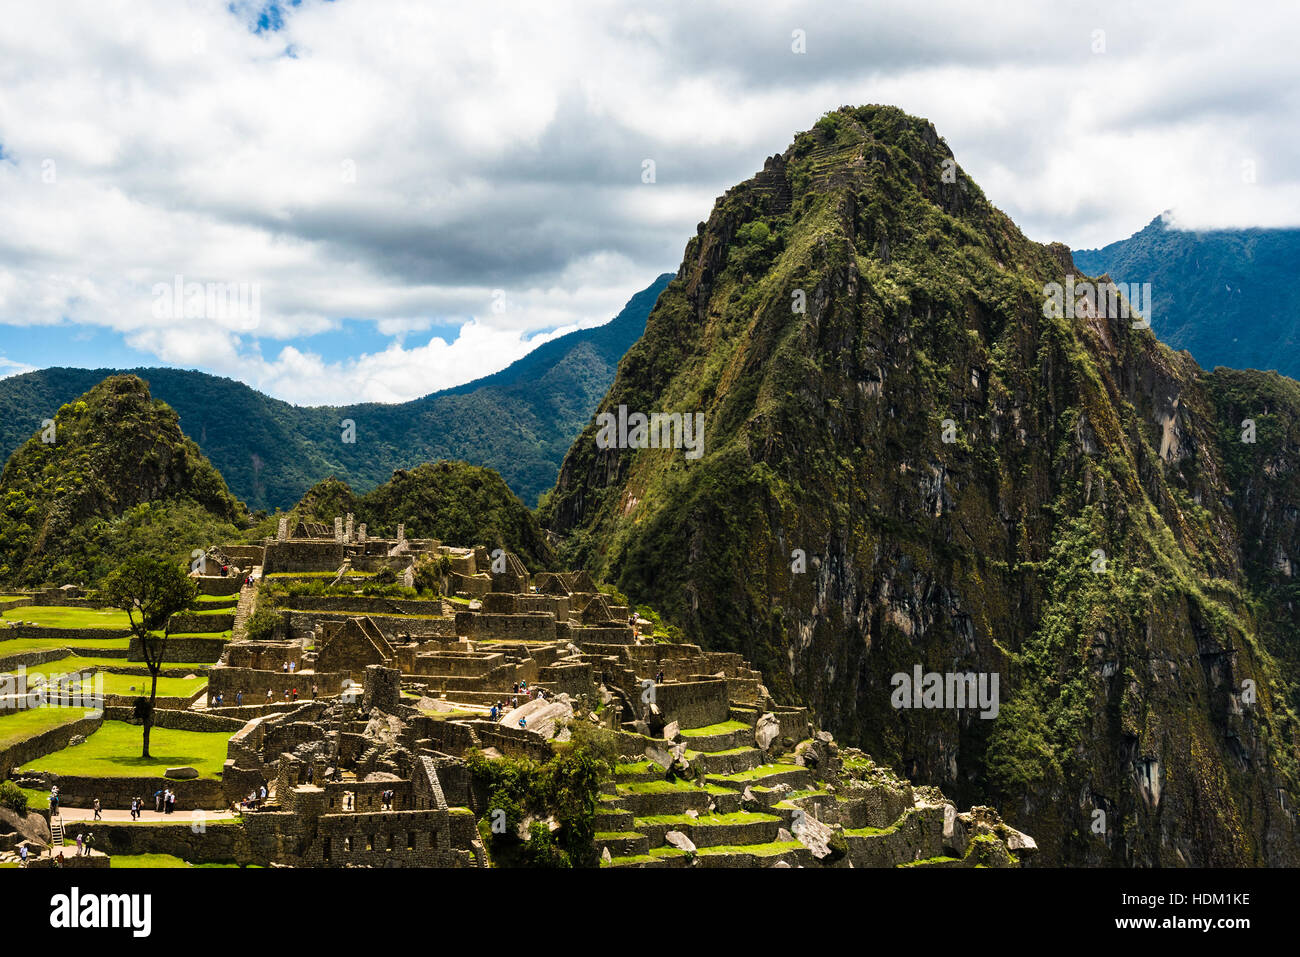 View of the Lost Incan City of Machu Picchu near Cusco, Peru. Machu Picchu is a Peruvian Historical Sanctuary. - Stock Image